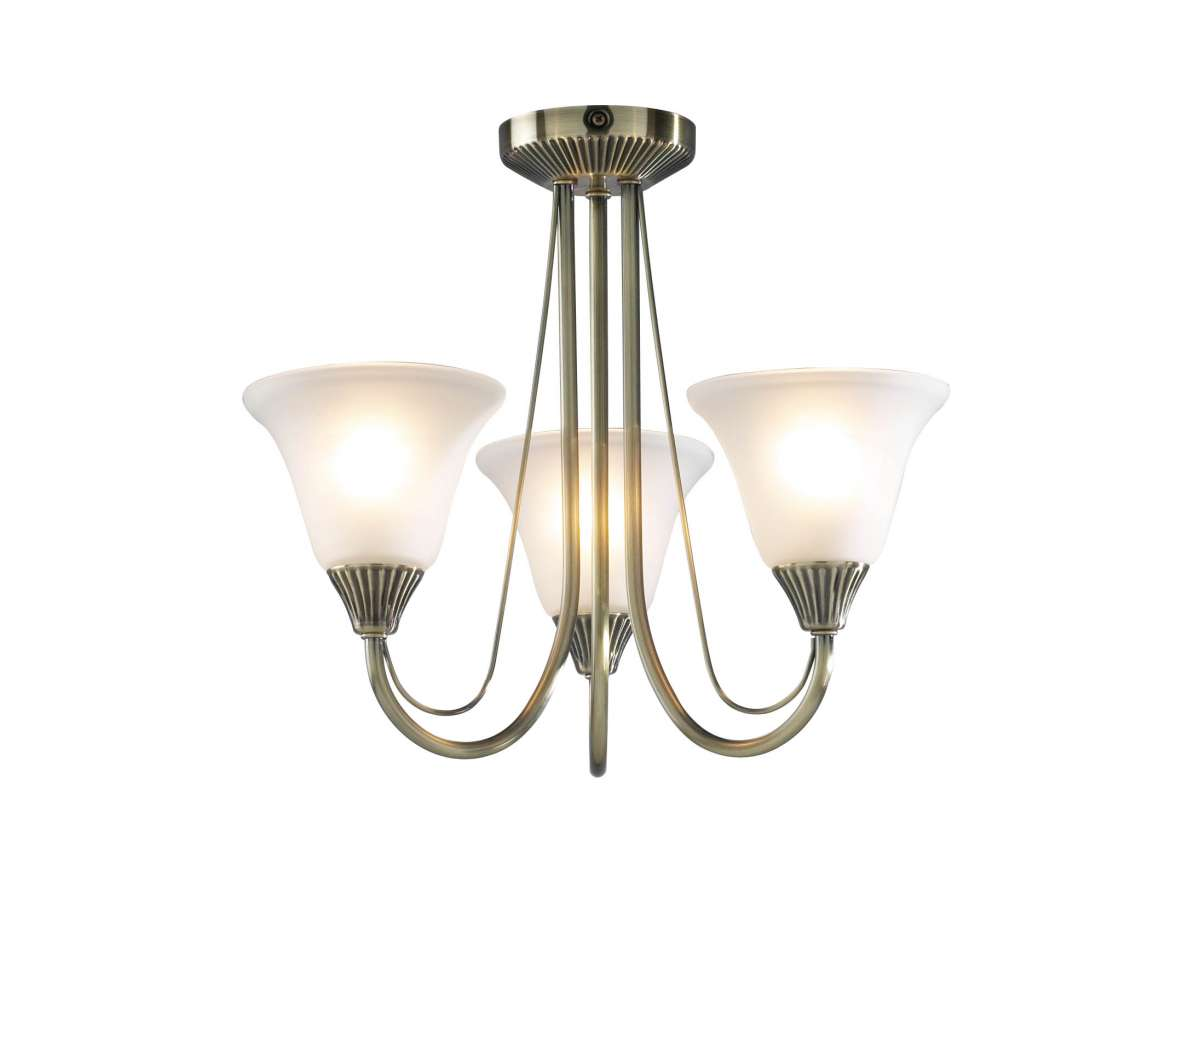 Boston 3-Light Antique Brass Semi-Flush Fitting